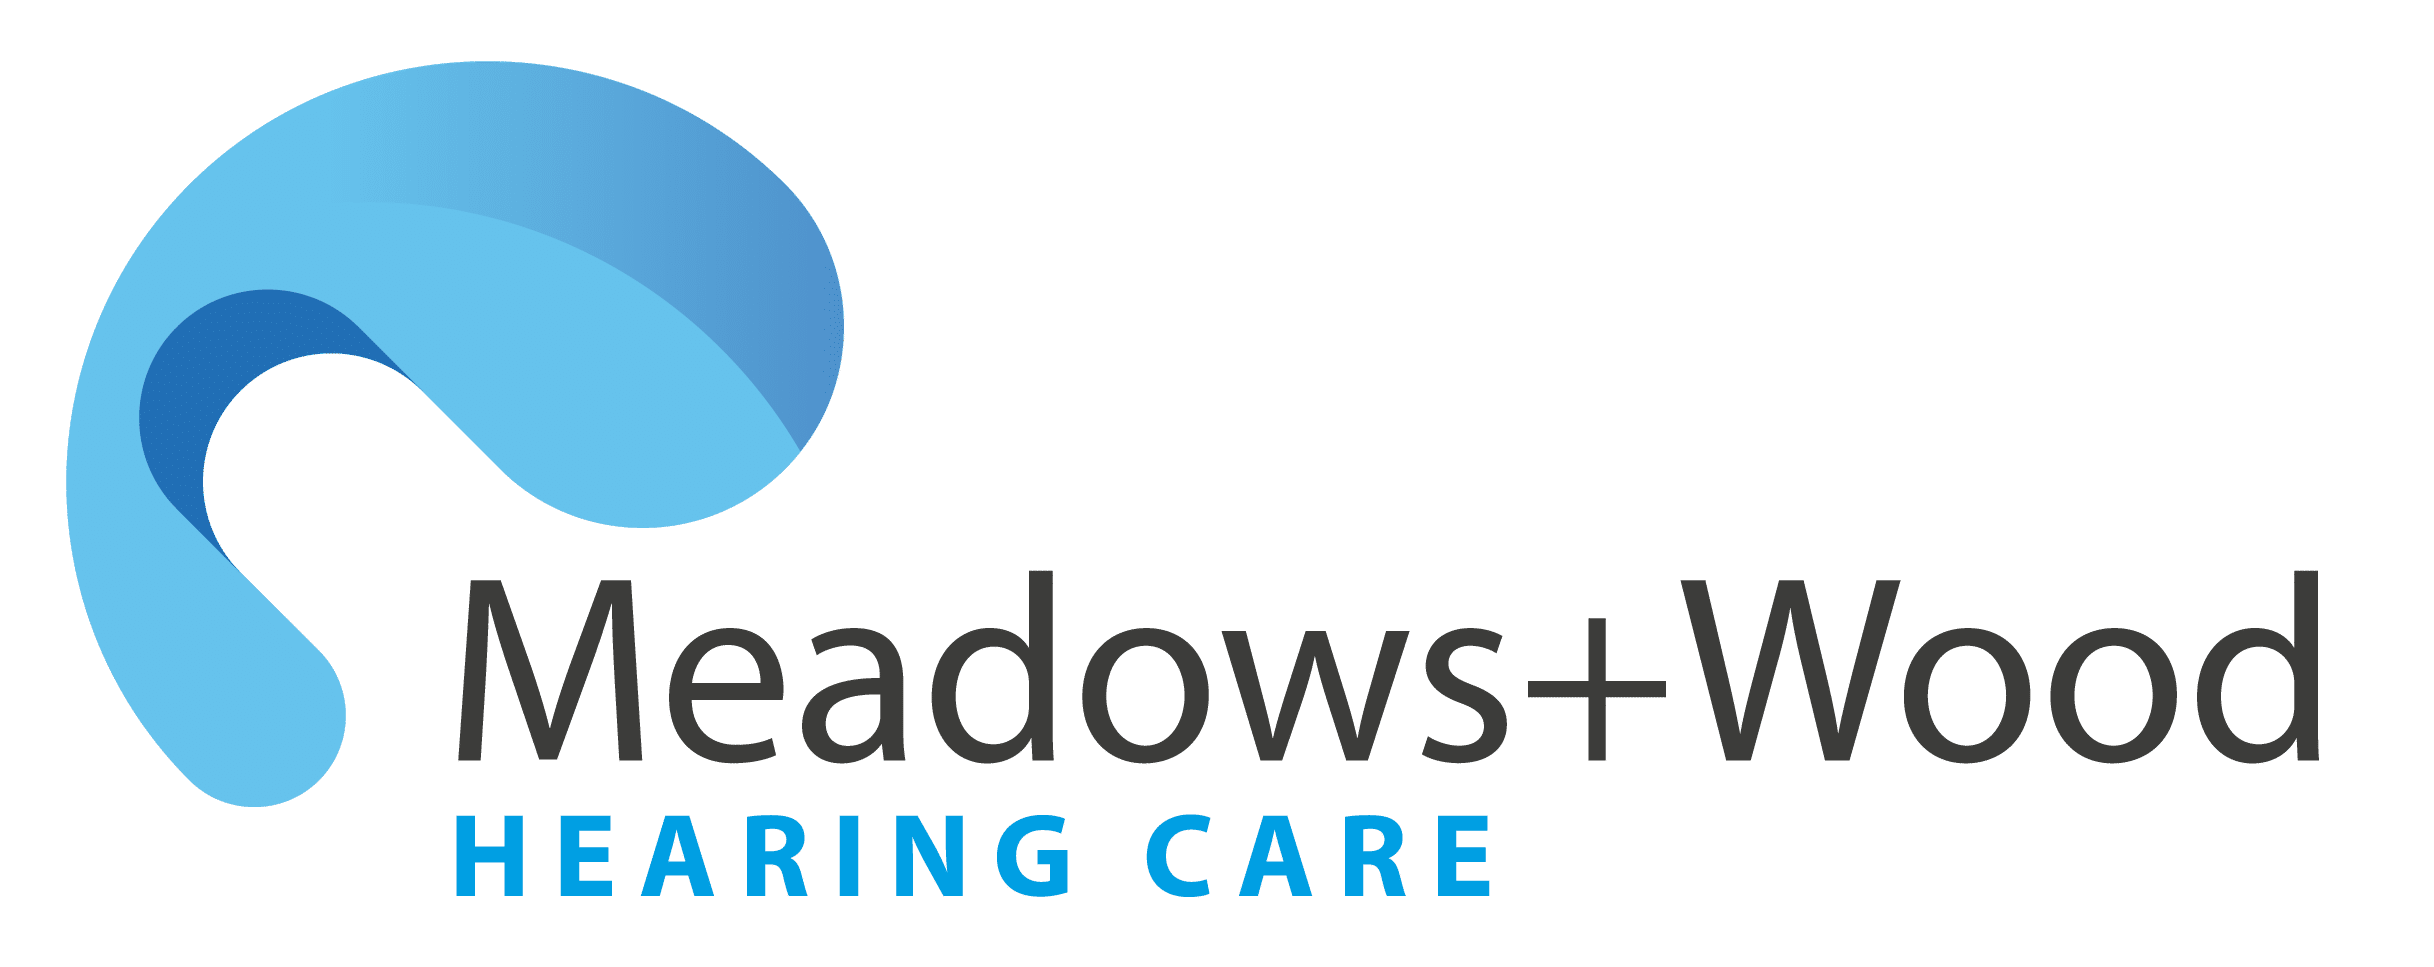 Meadows+Wood Hearing Care